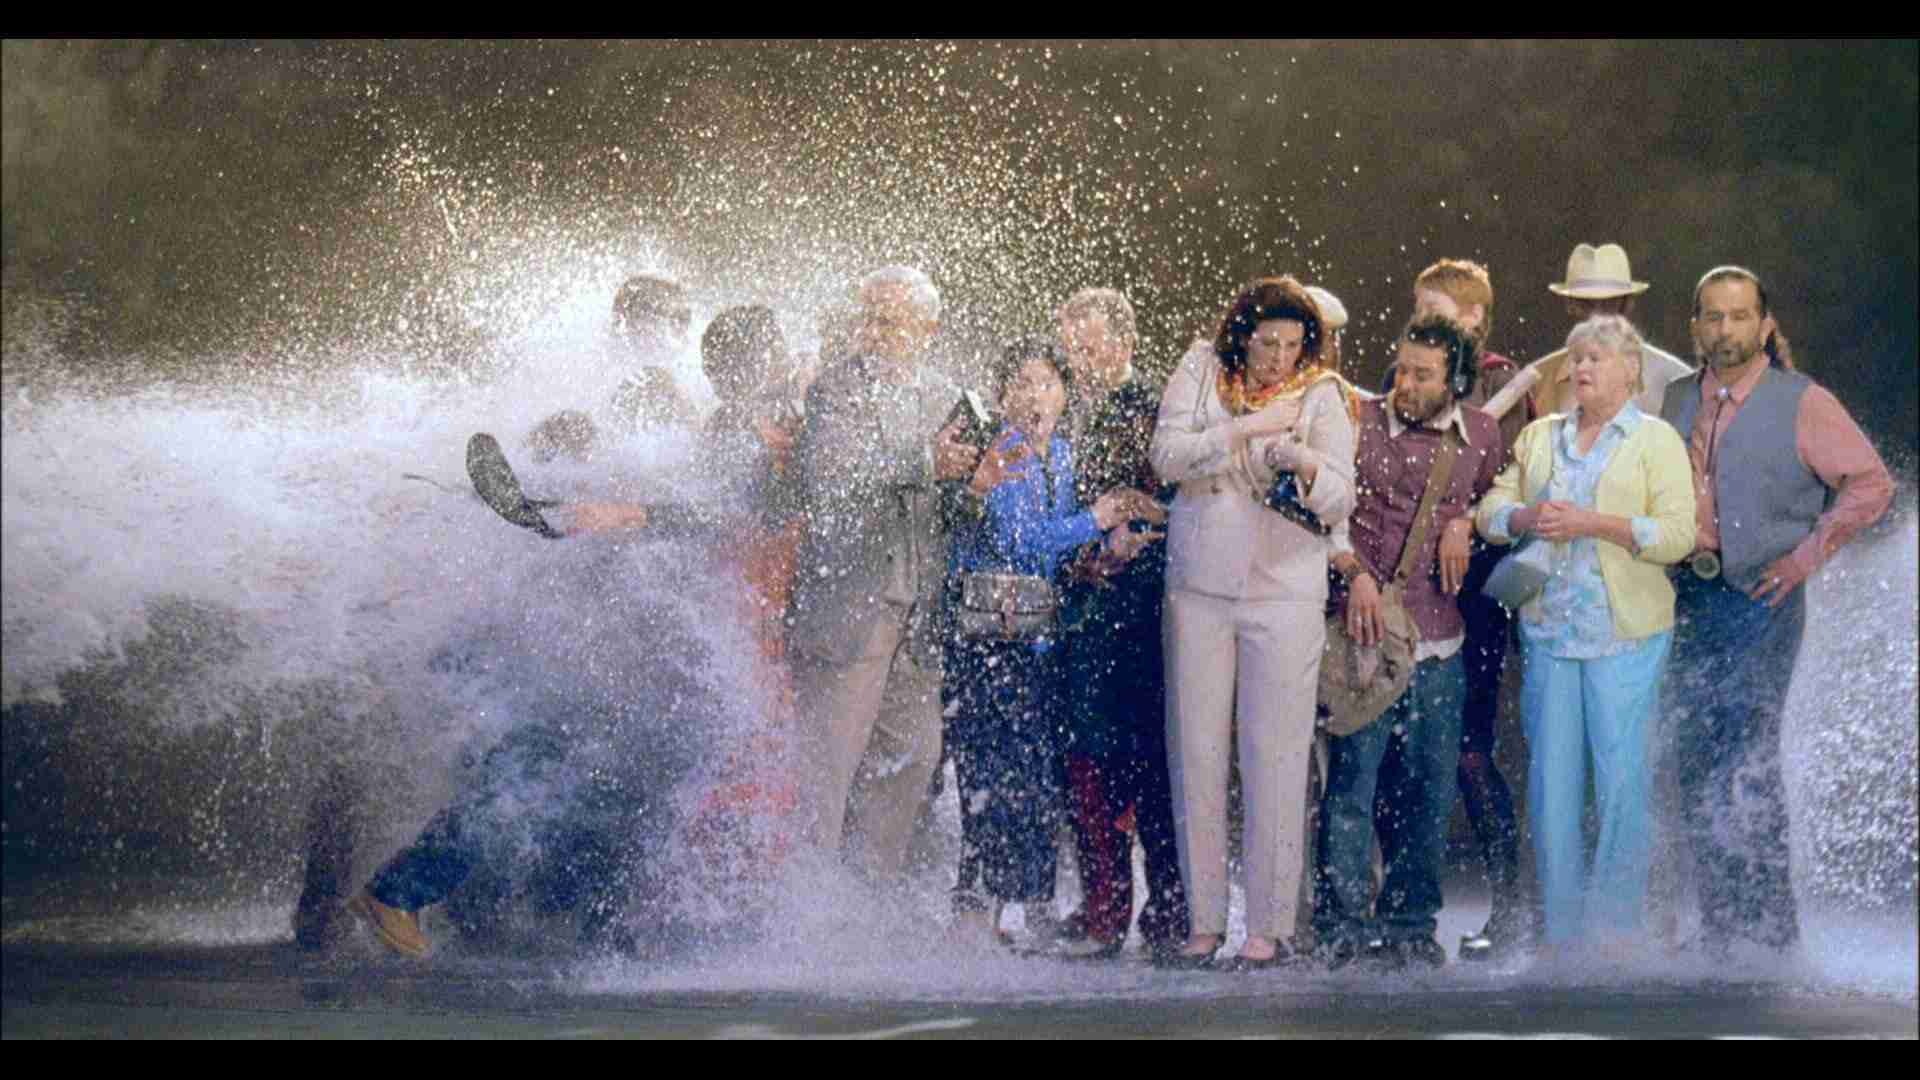 bill viola and the importance of making visible what can